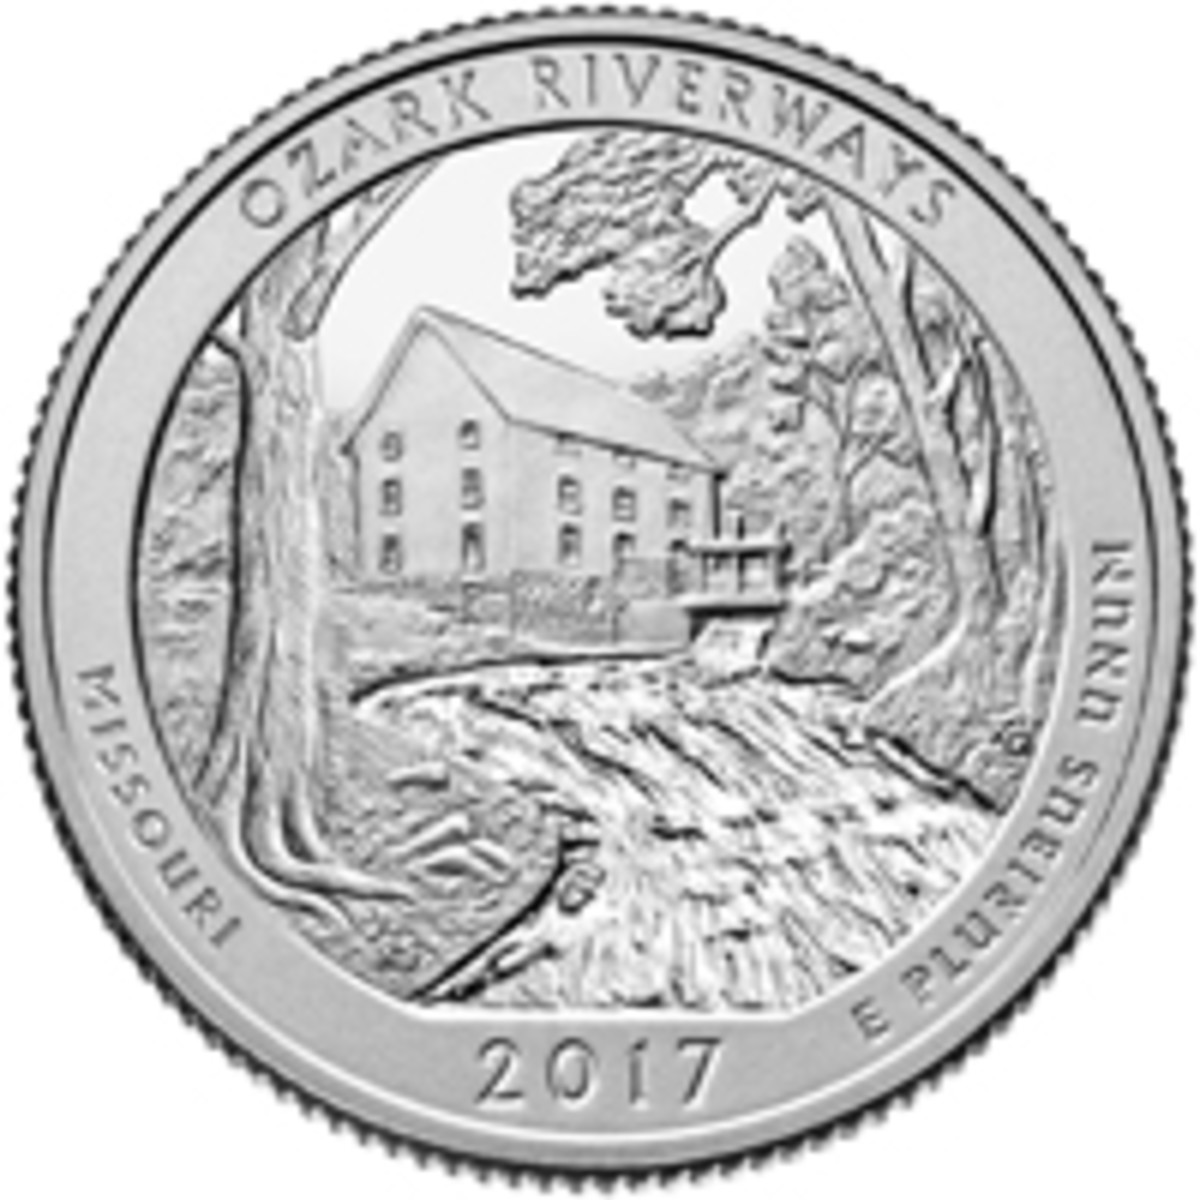 The beauty of the Ozarks is shown on the latest America the Beautiful quarter.